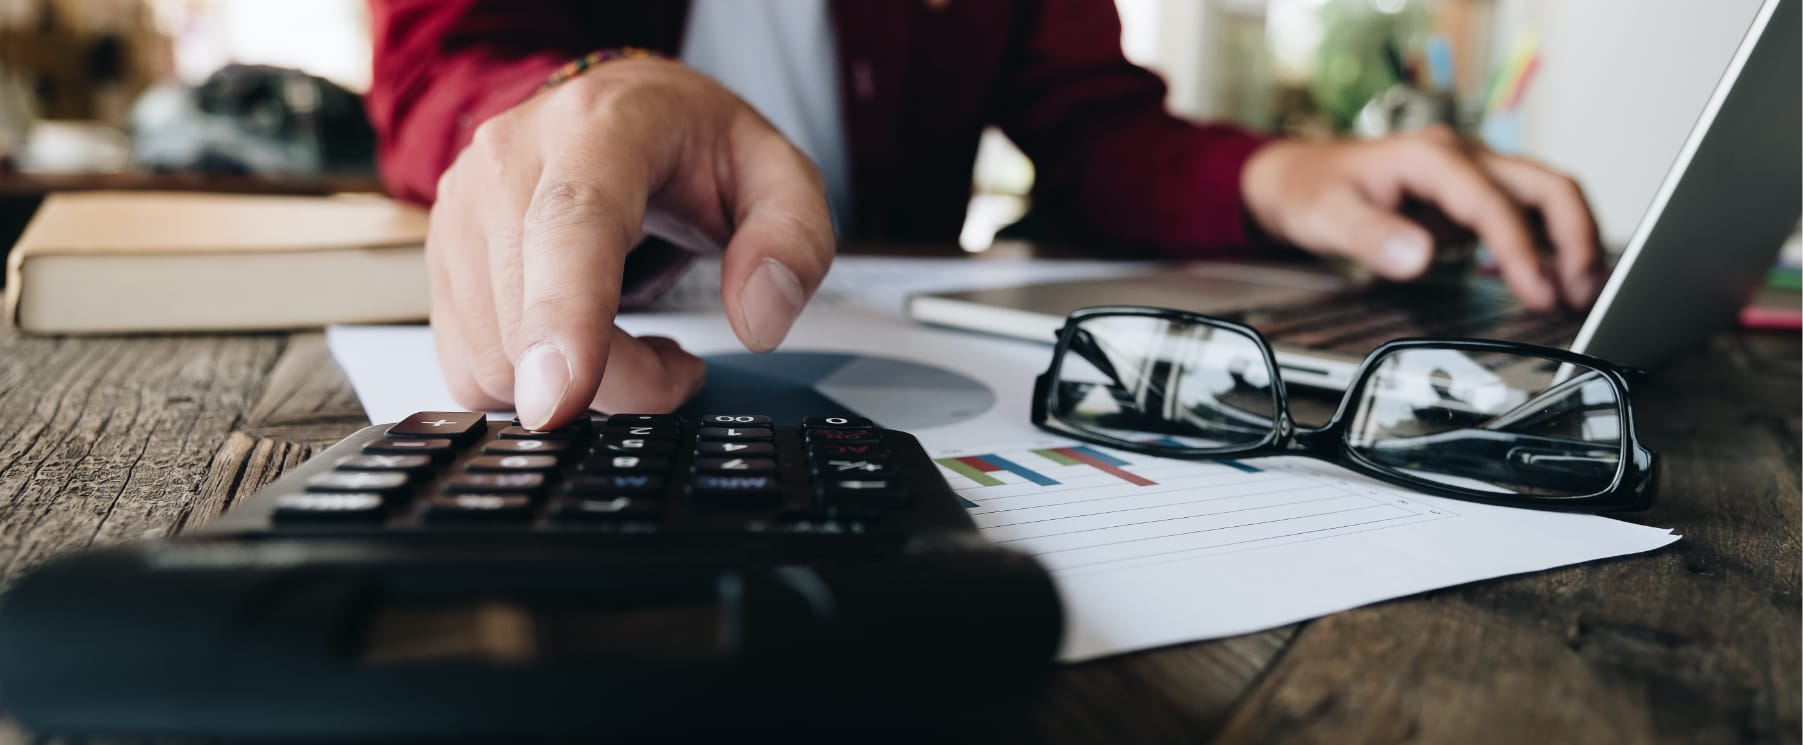 Doing your own bookkeeping? Then avoid these mistakes